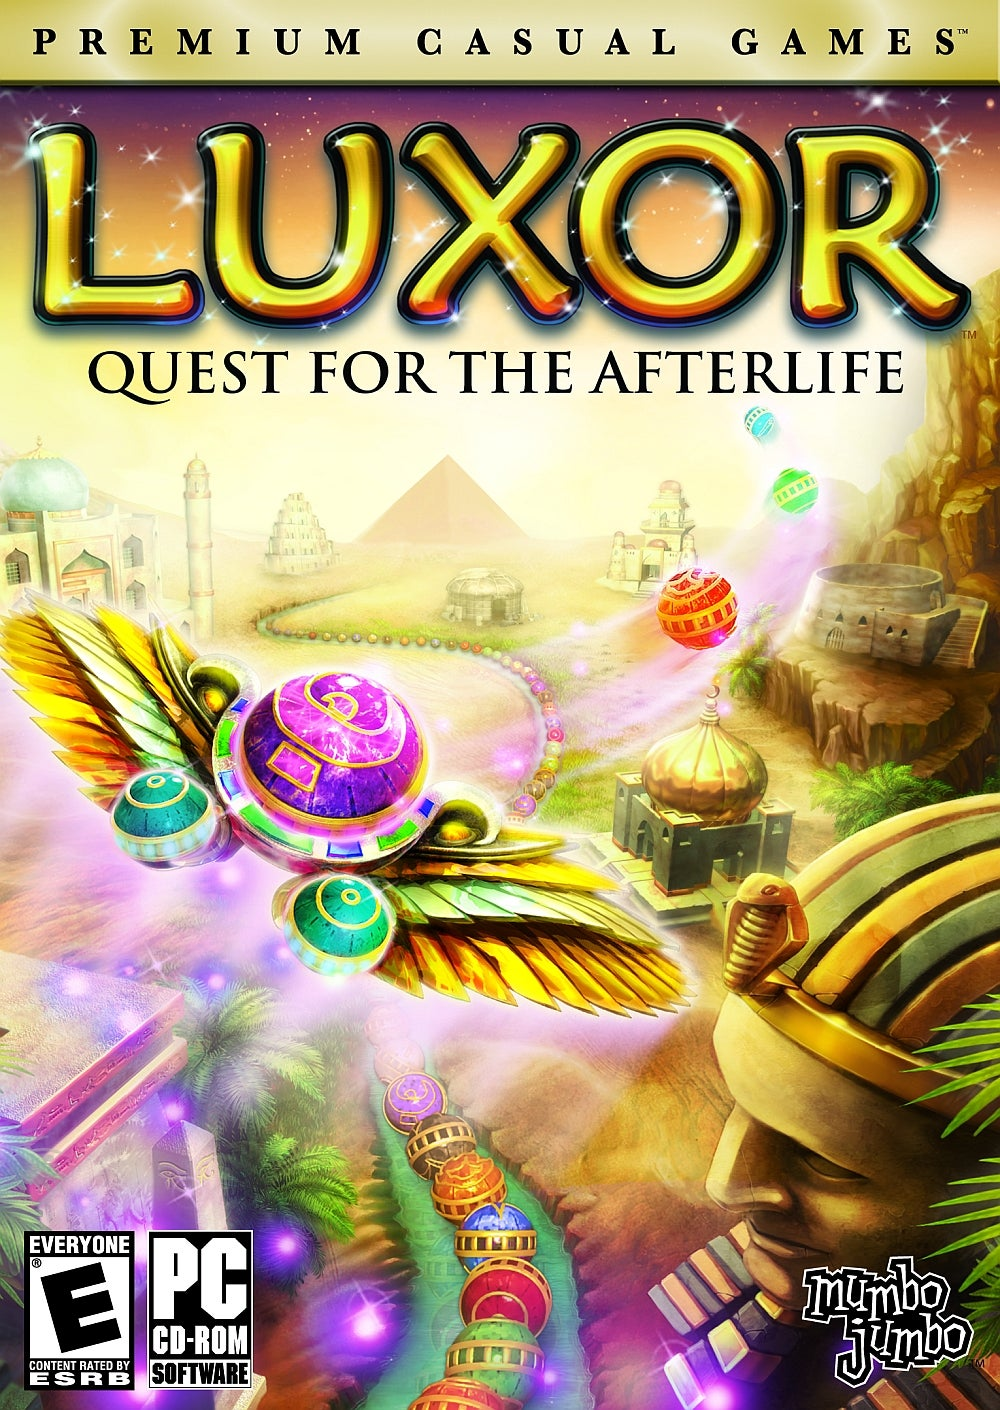 Luxor Quest For The Afterlife PC IGN